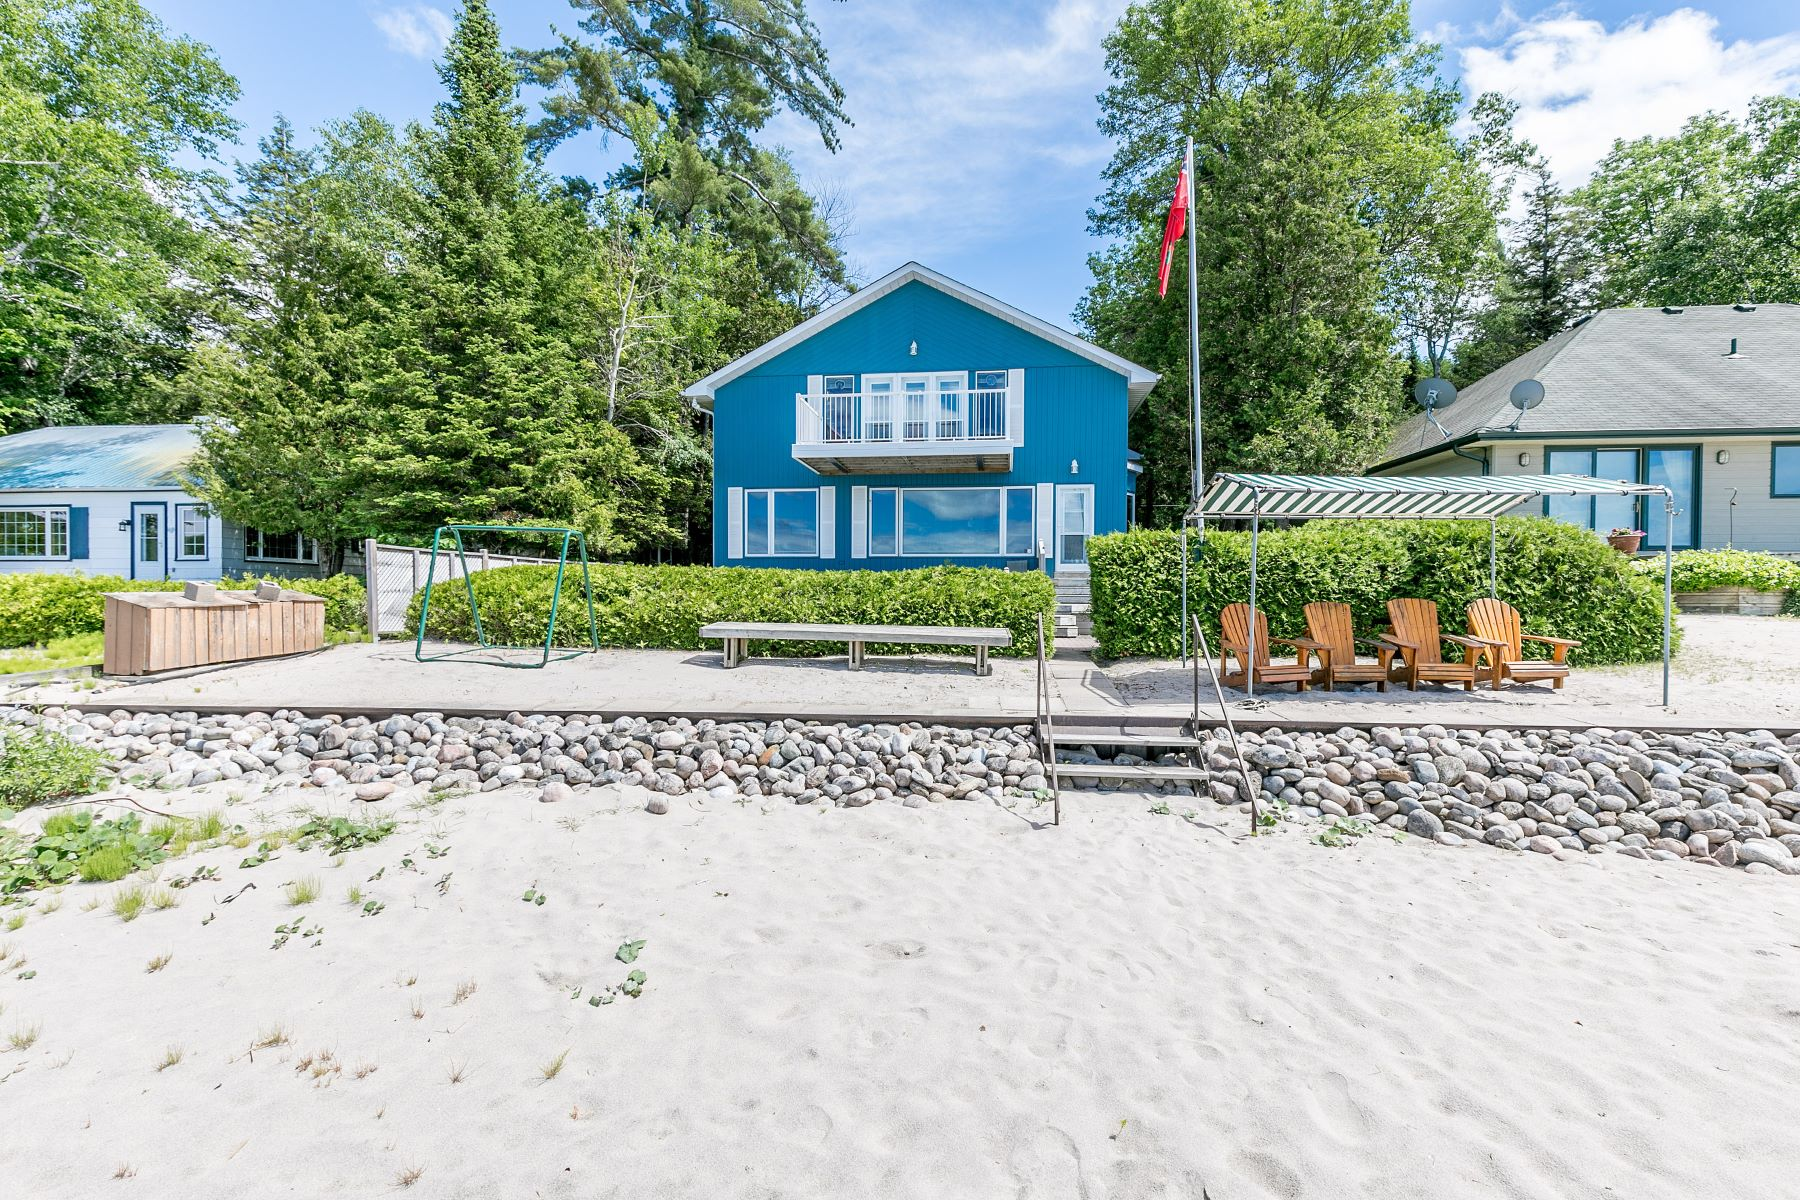 Single Family Home for Sale at Thunder Beach 36 East Beach Road, Tiny, Ontario, L9M 0M6 Canada